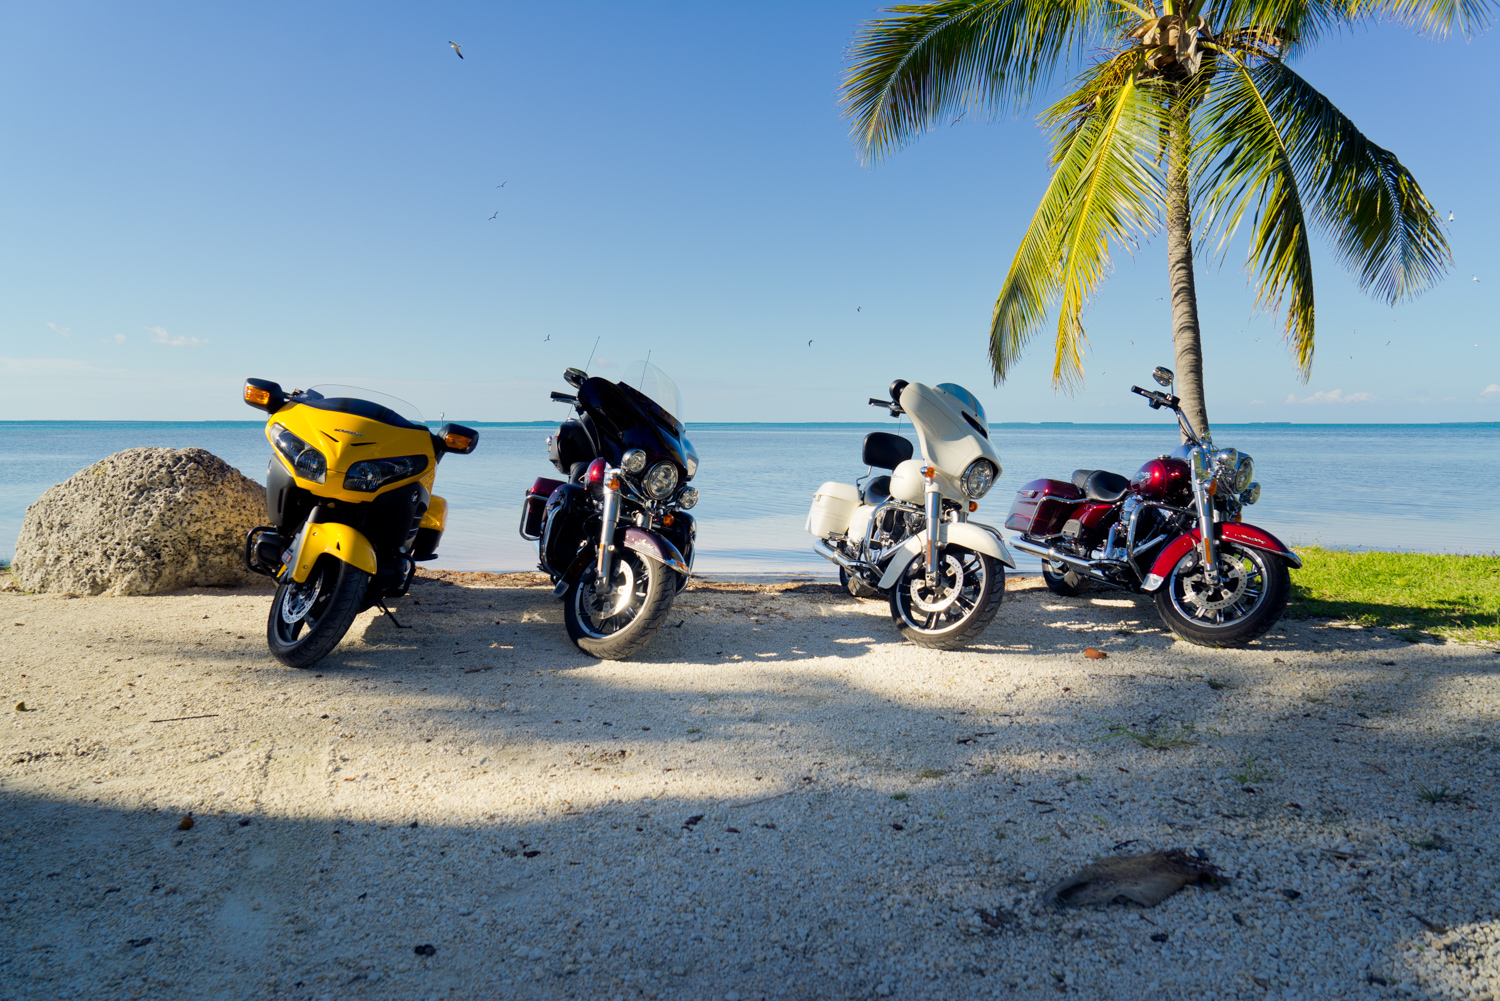 Motorcycle Rental Fort Lauderdale Harley Rental Fort